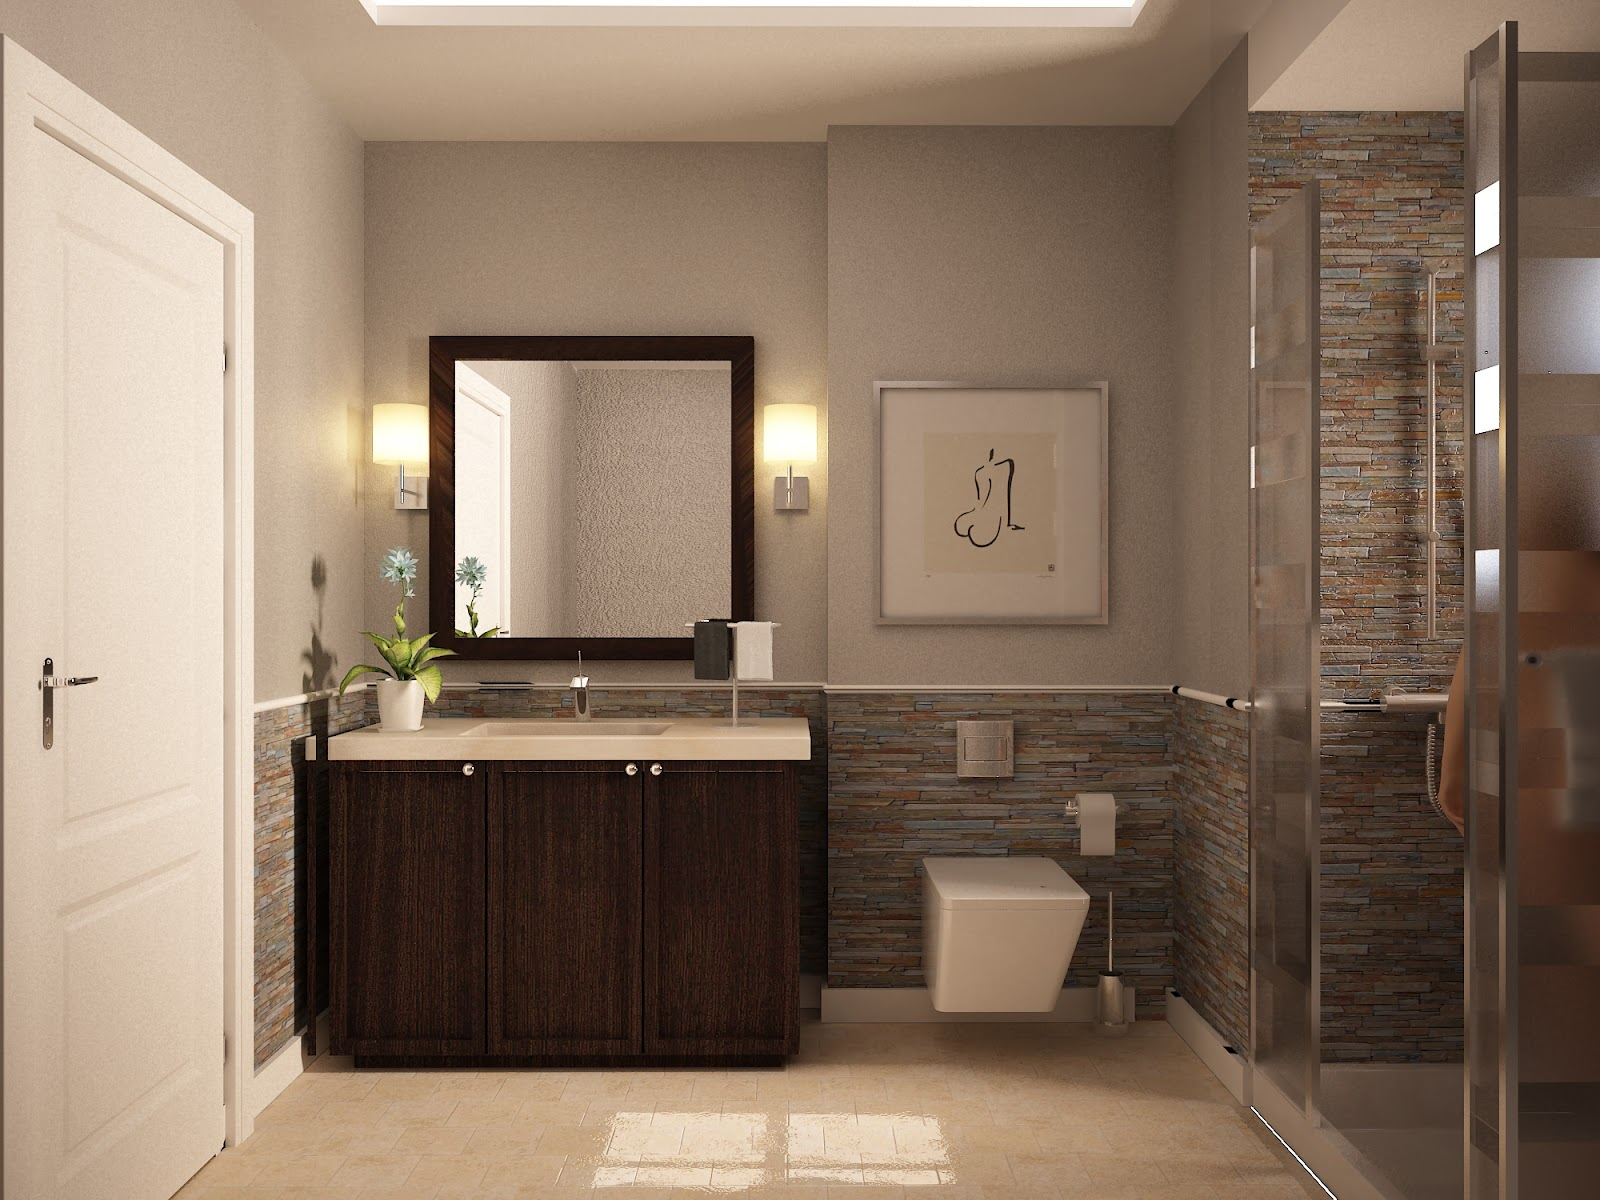 Cozy best bathroom paint colors | Elegant Small Bathroom Color Schemes With bathroom paint colors for small bathrooms